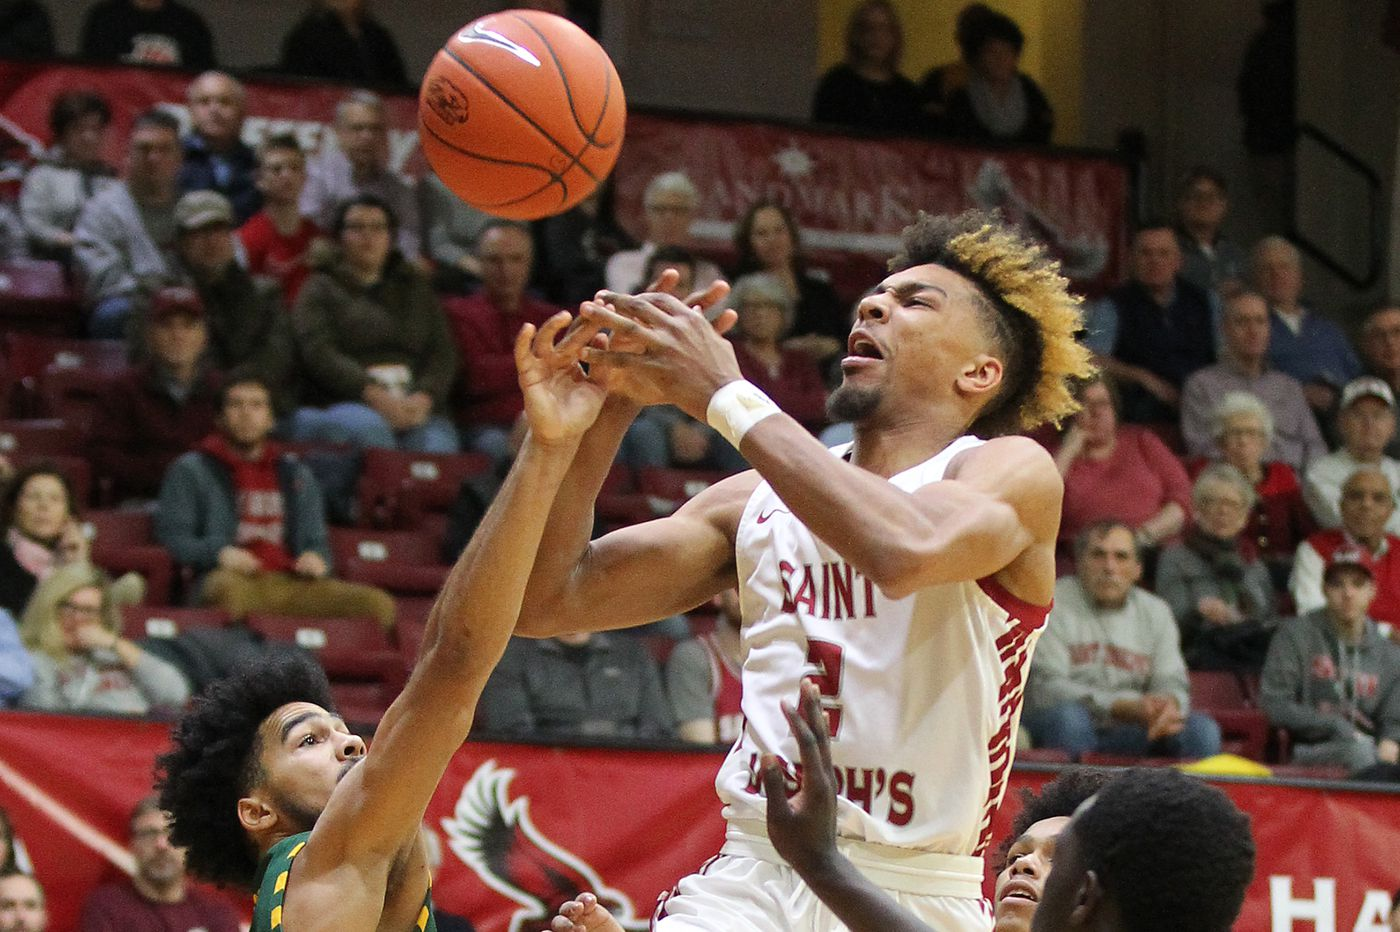 City 6 observations: Temple steals one; St. Joe's loses ugly twice; big games ahead this week